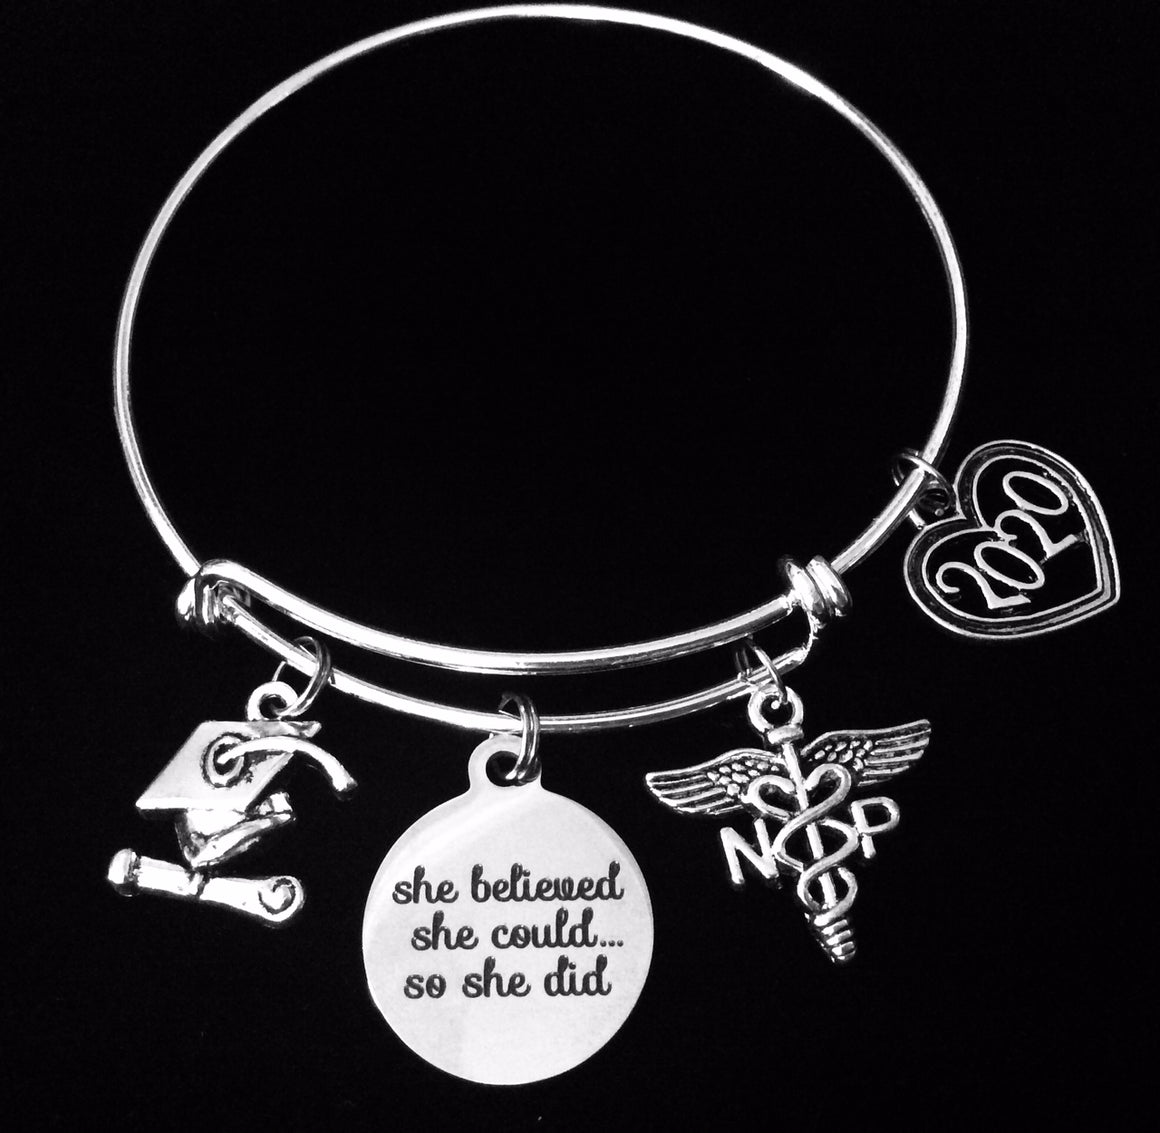 2020 Graduating NP Gift Nurse She Believed She Could So She Did Expandable Charm Bracelet Adjustable One Size Fits All Gift